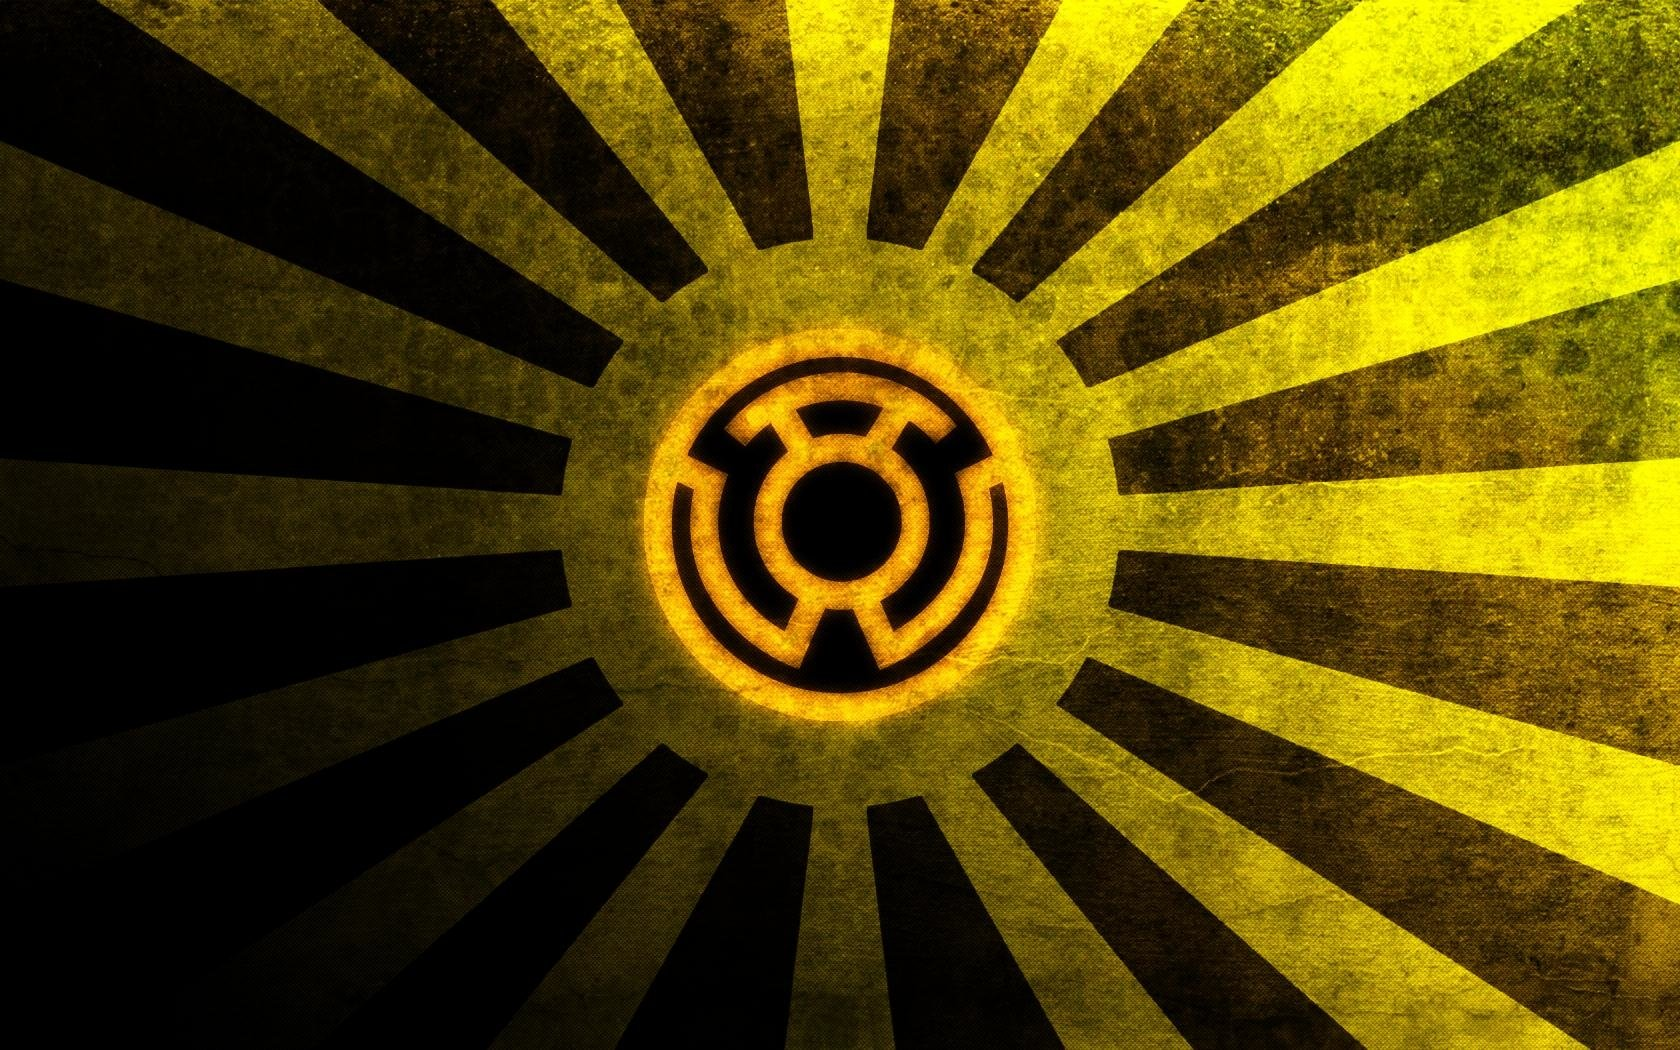 Sinestro Corps Wallpaper And Background Image 1680x1050 Id